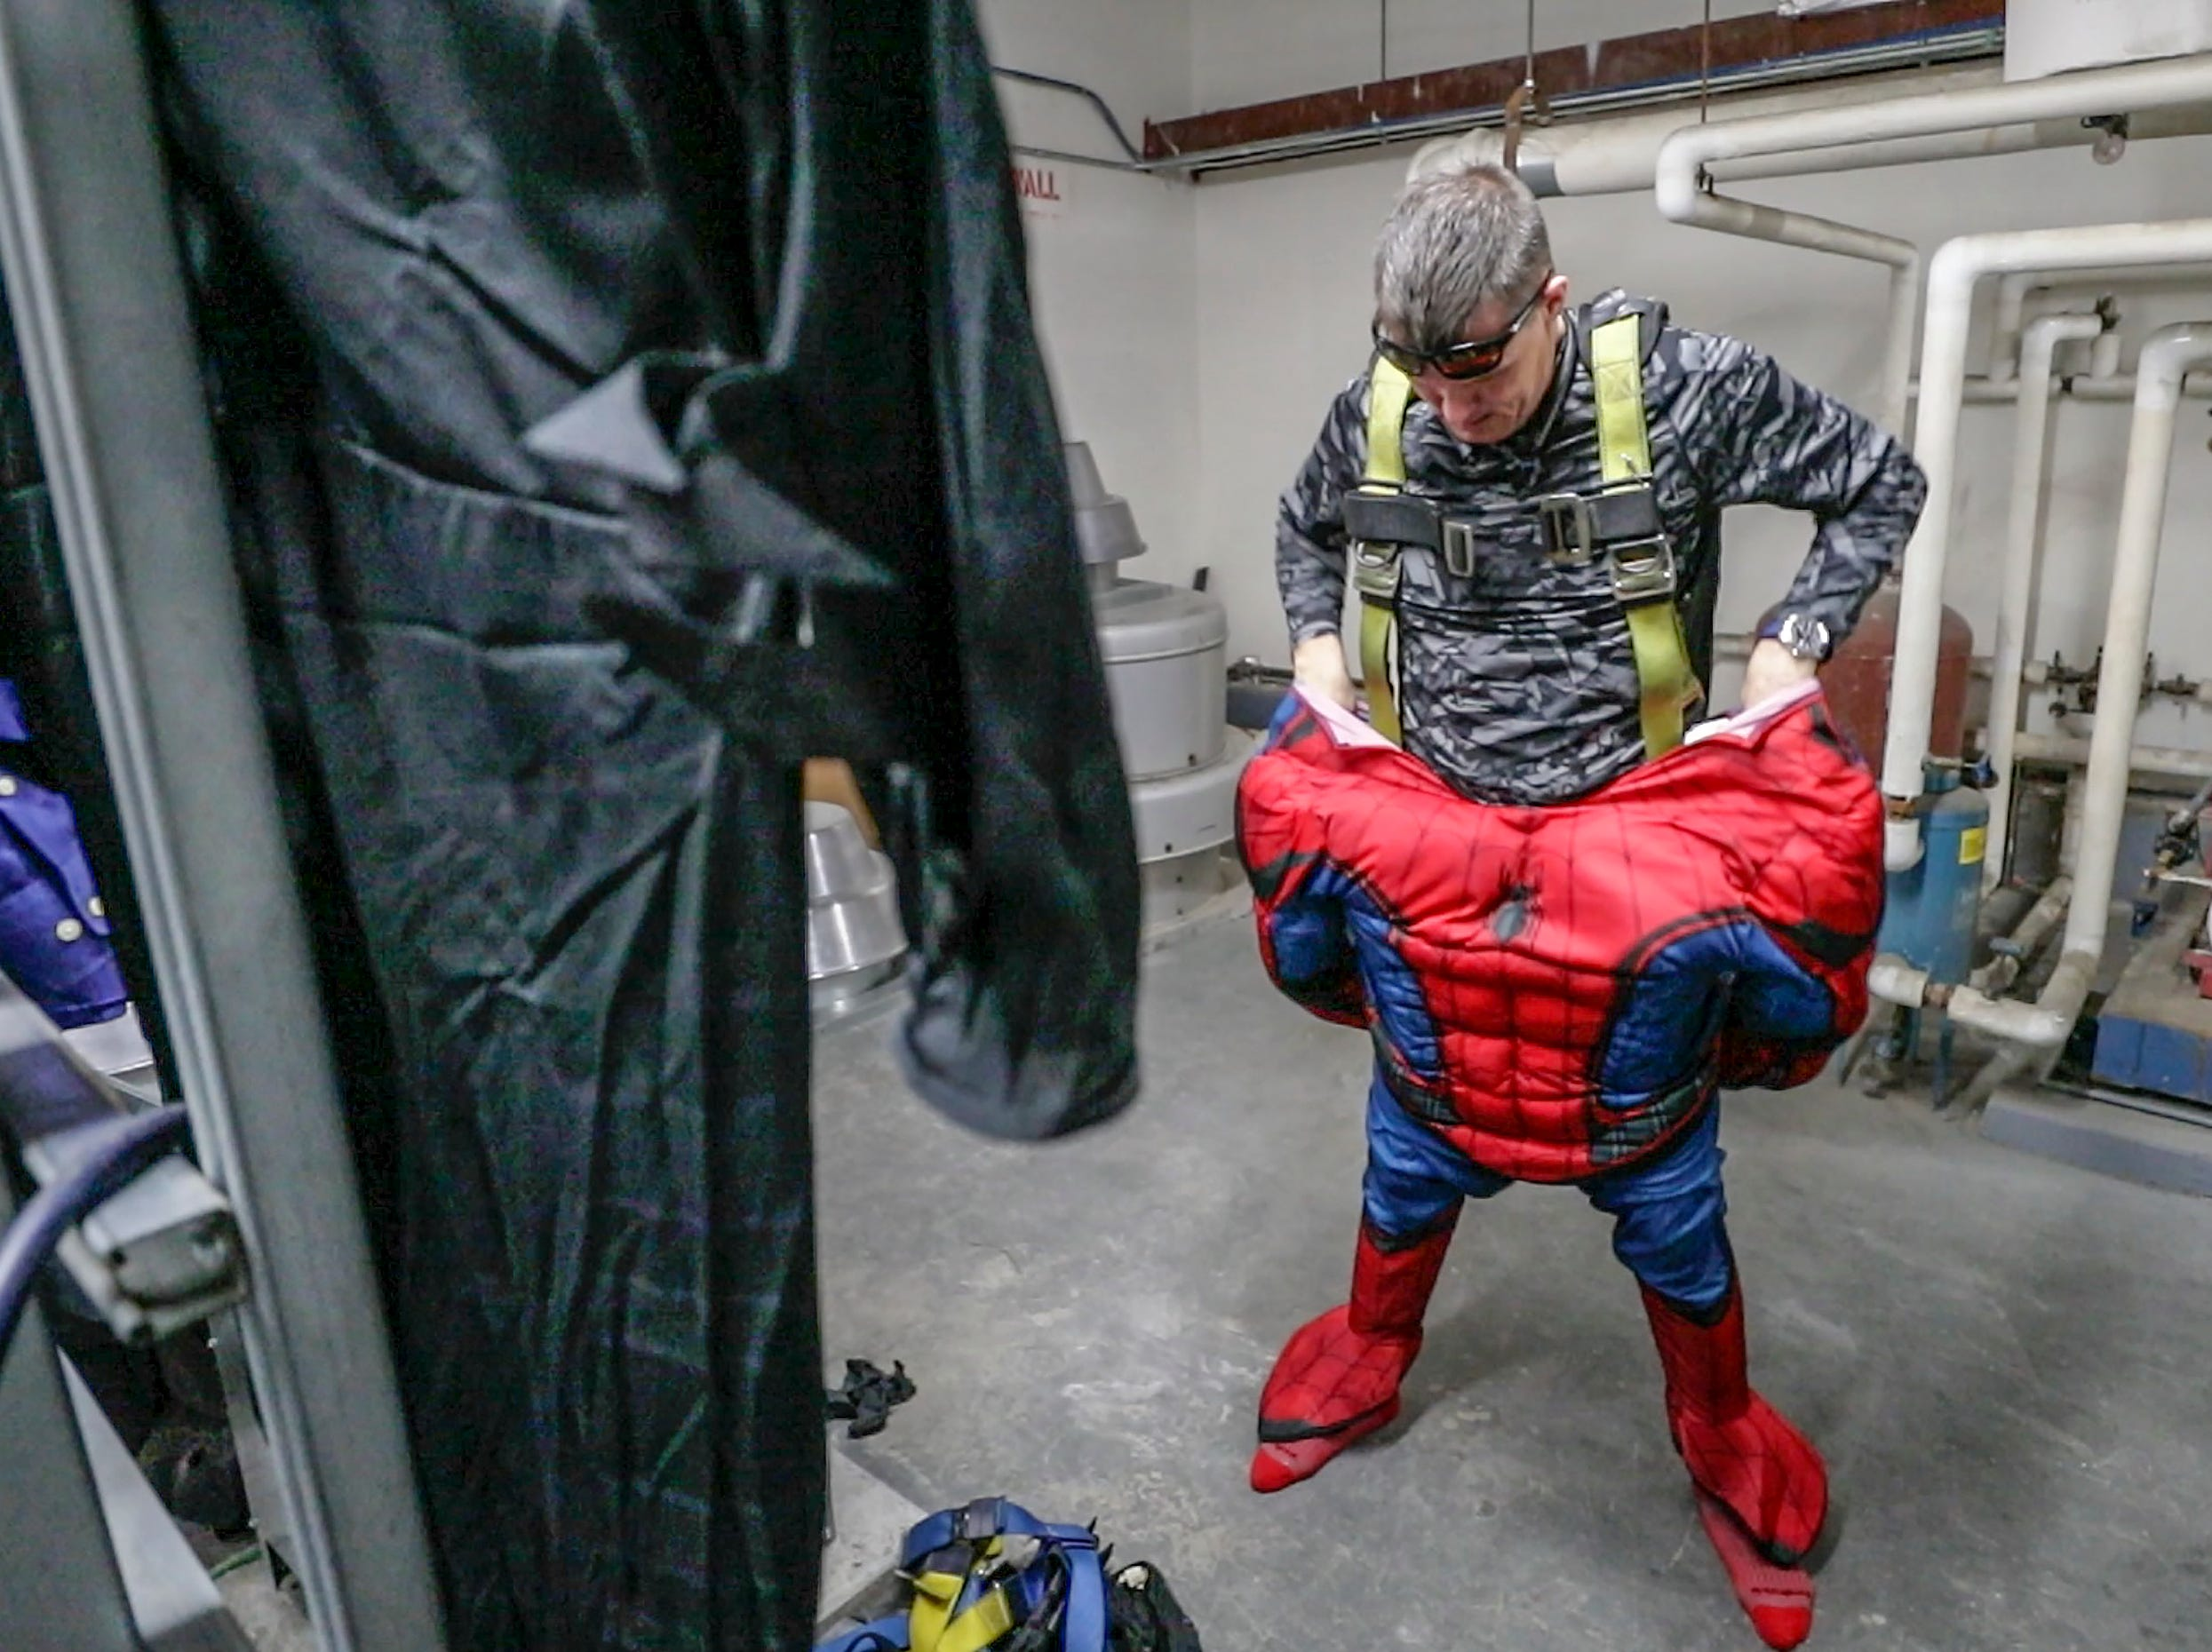 Window washer Lonnie Hart, with Pro Clean International, portraying Spider-Man, puts on his costume before going over the roof of Norton Children's Hospital on Thursday morning.February 21, 2019